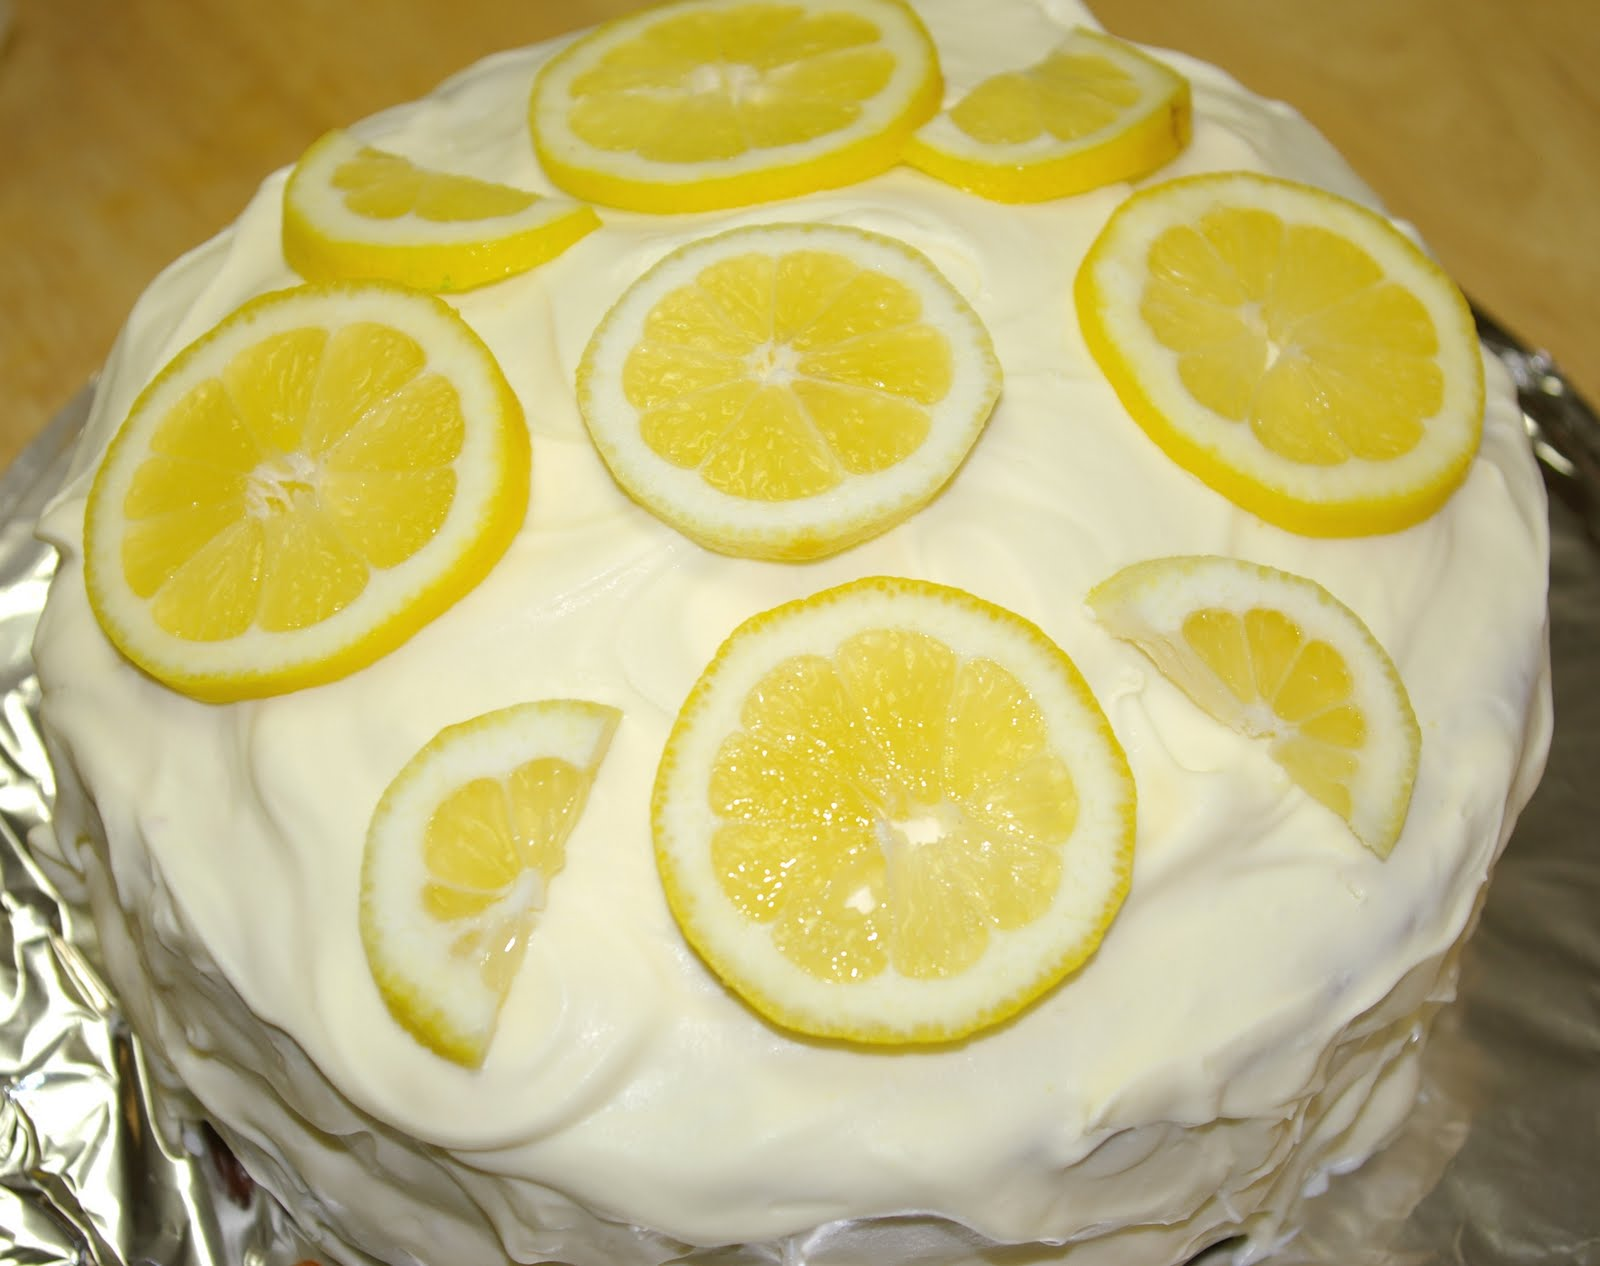 Lemon Cake Recipe Wowza!